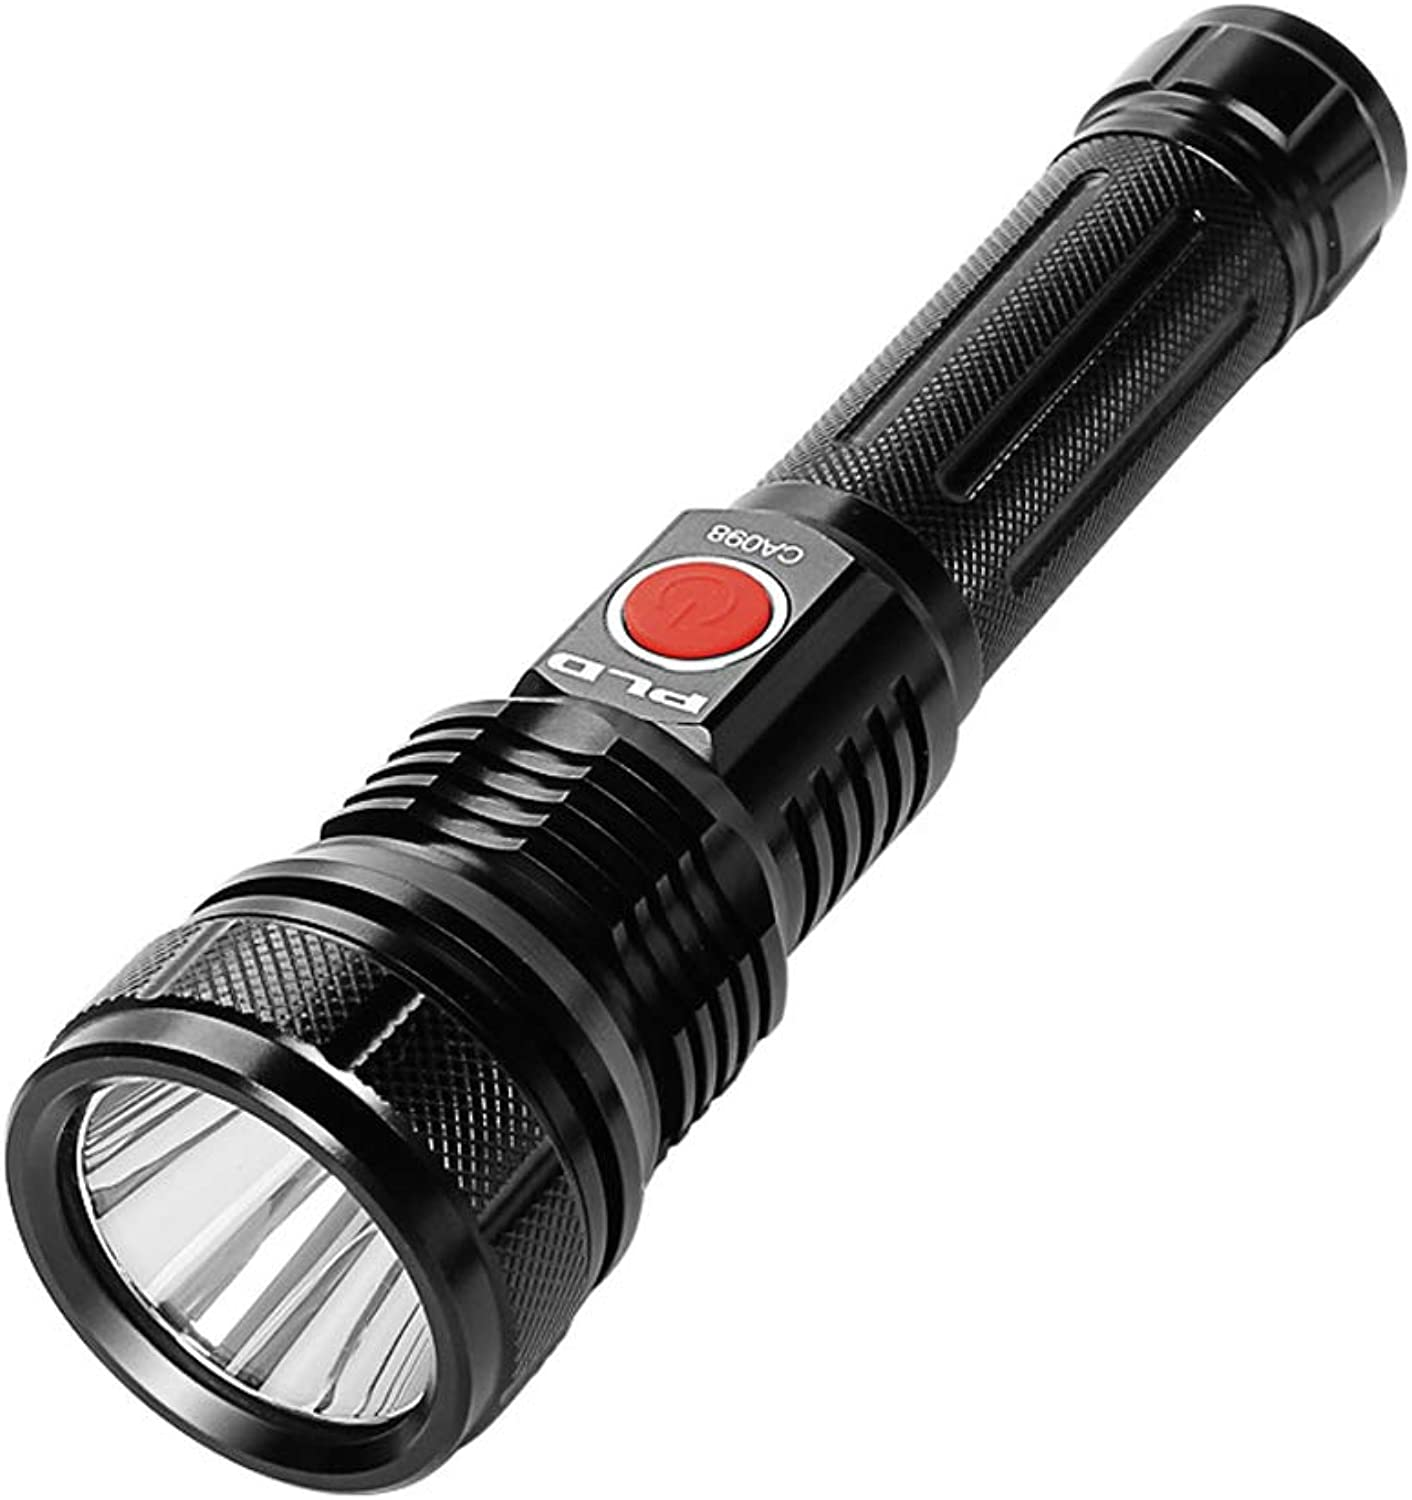 Light Flashlight USB Charging Portable Outdoor Torch Light with 5 Light Modes Camping